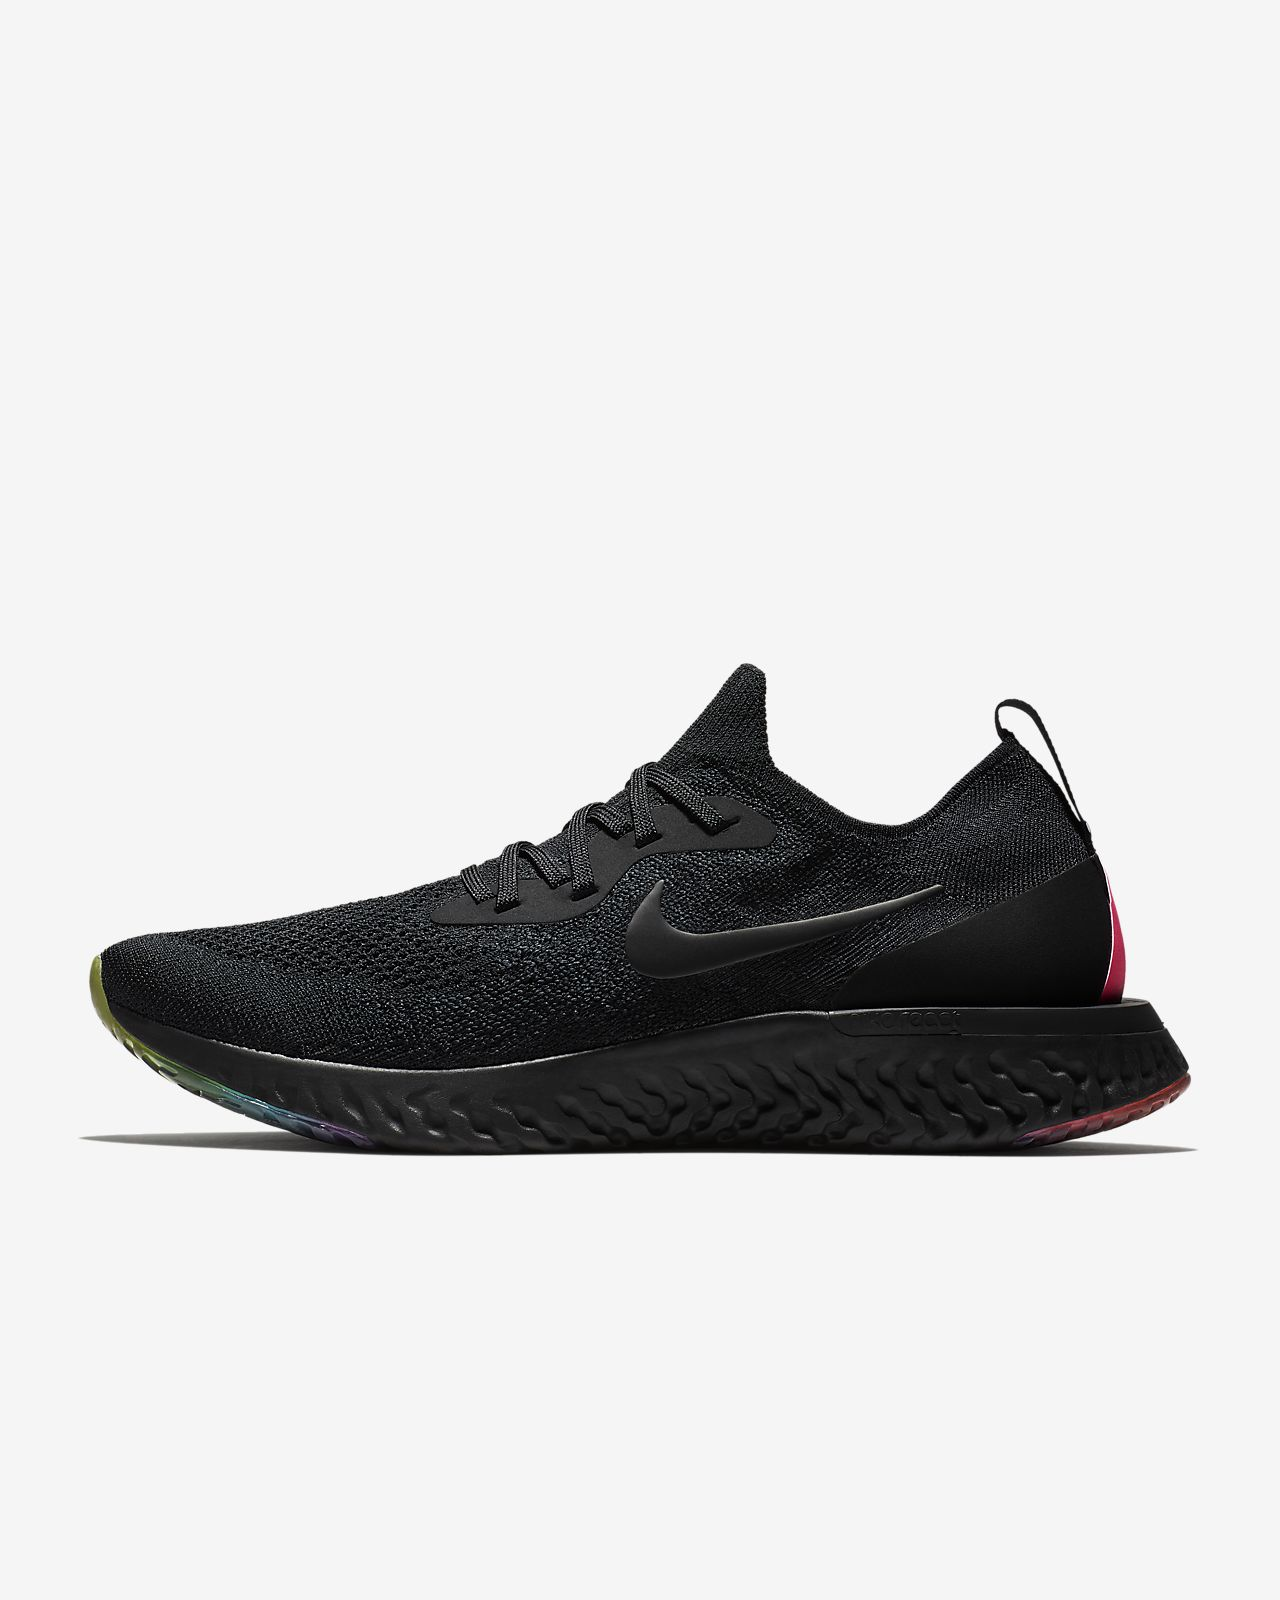 Nike Epic React Flyknit BETRUE Mens Running Shoe